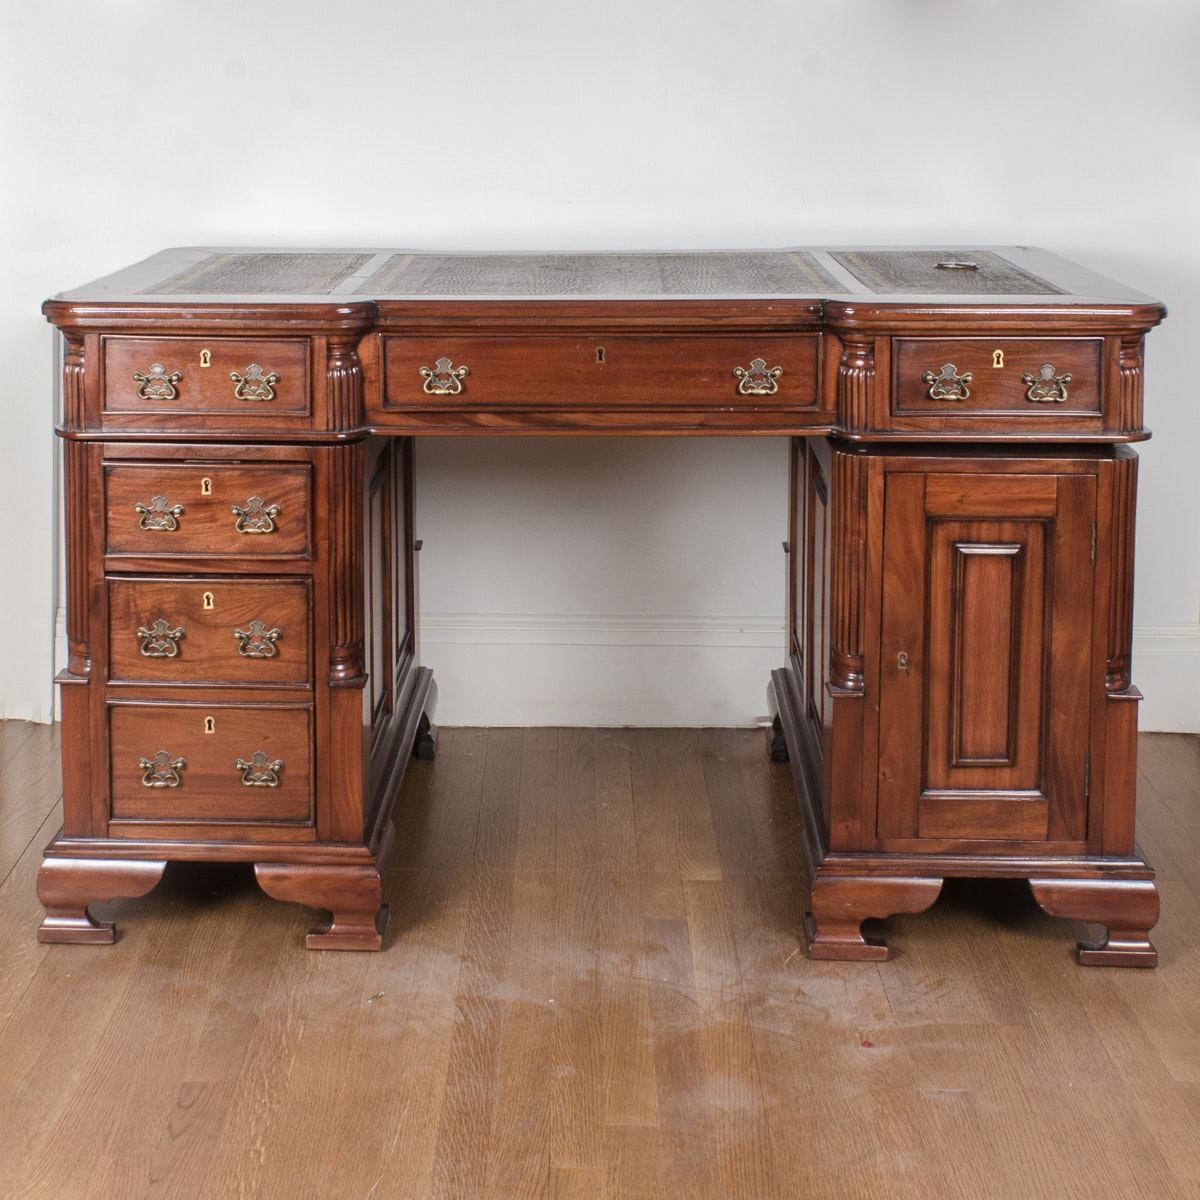 Mahogany Partners Desk from Victoria Collections